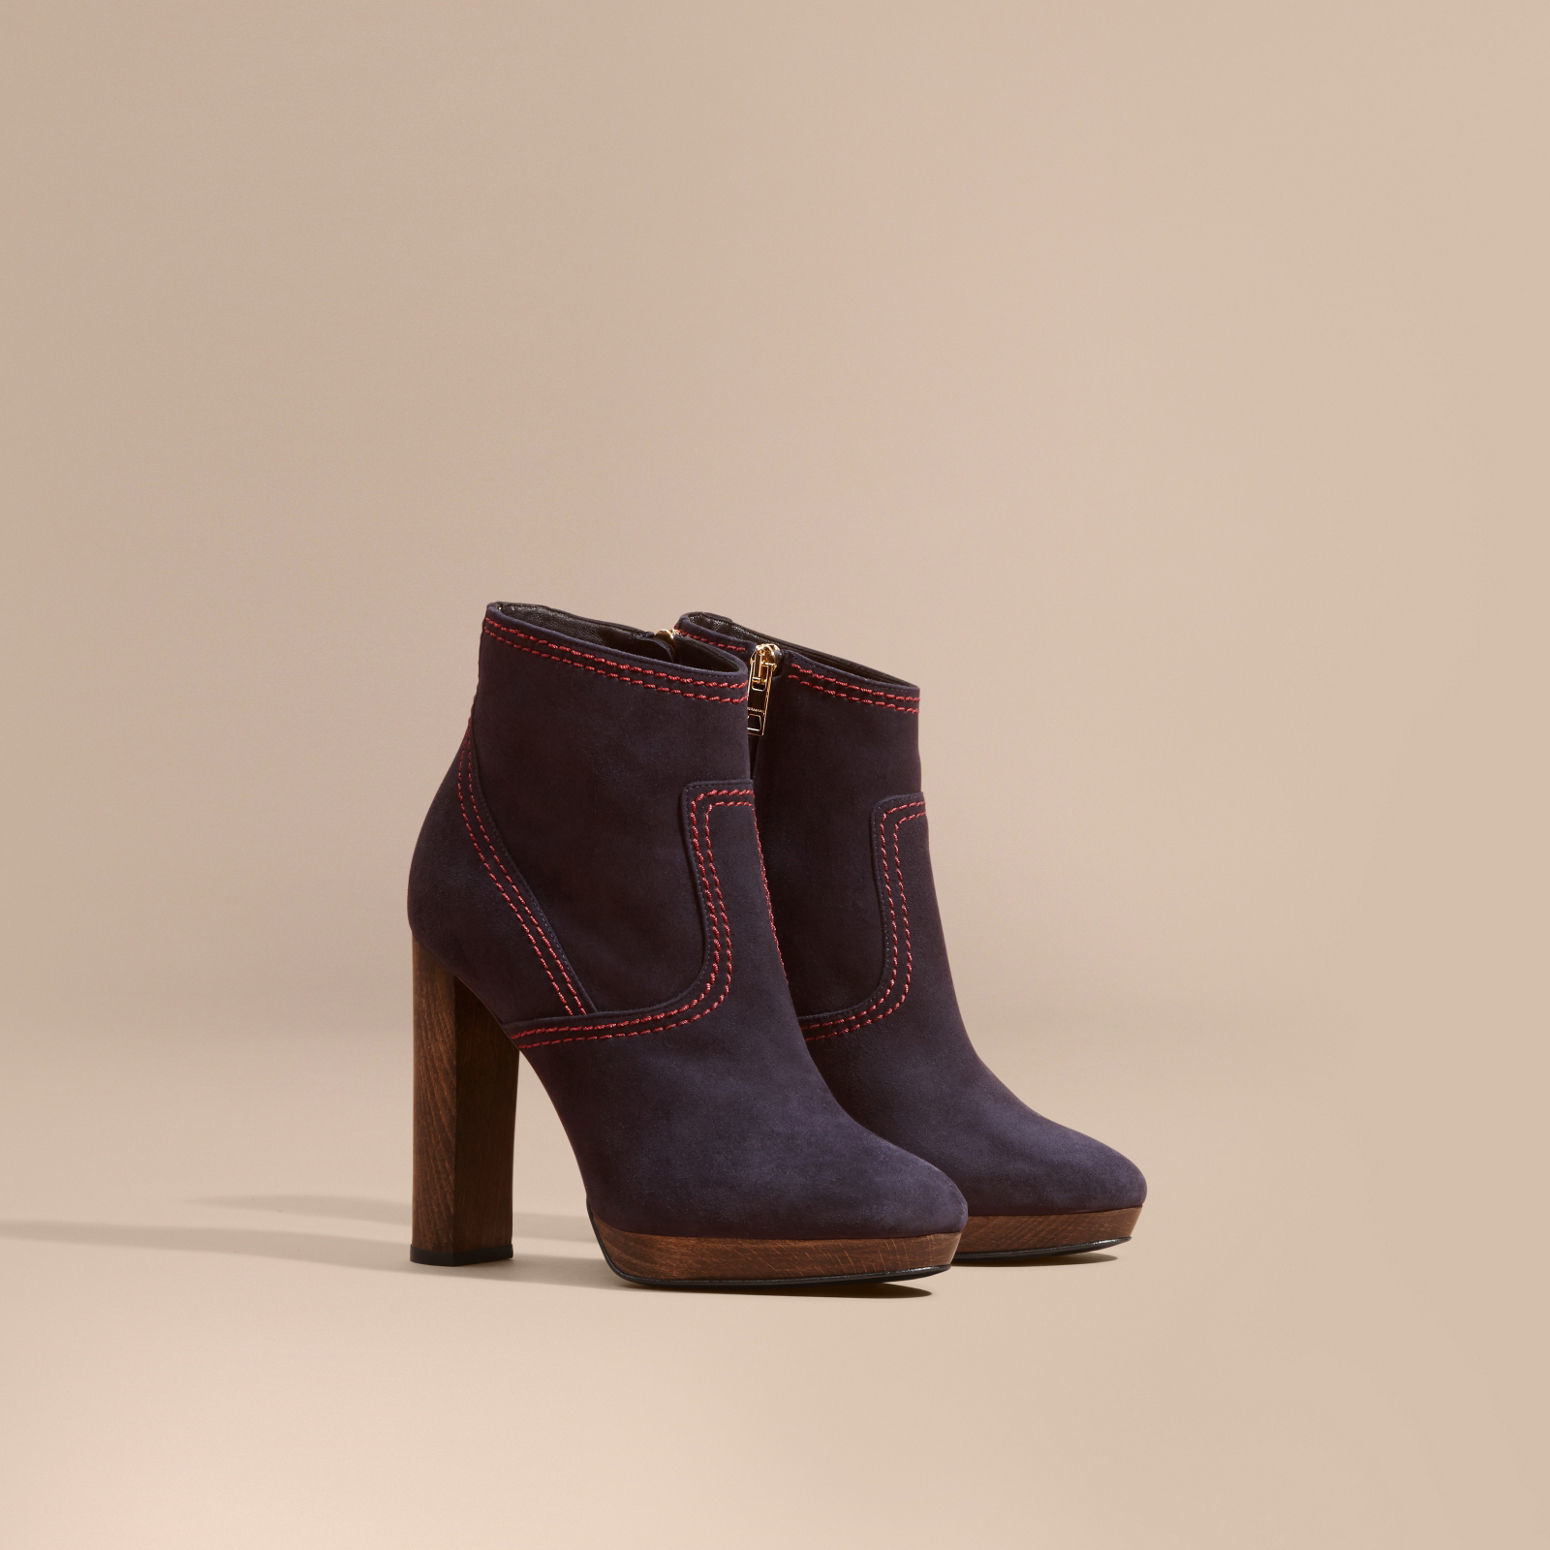 burberry suede ankle boots navy in blue navy lyst